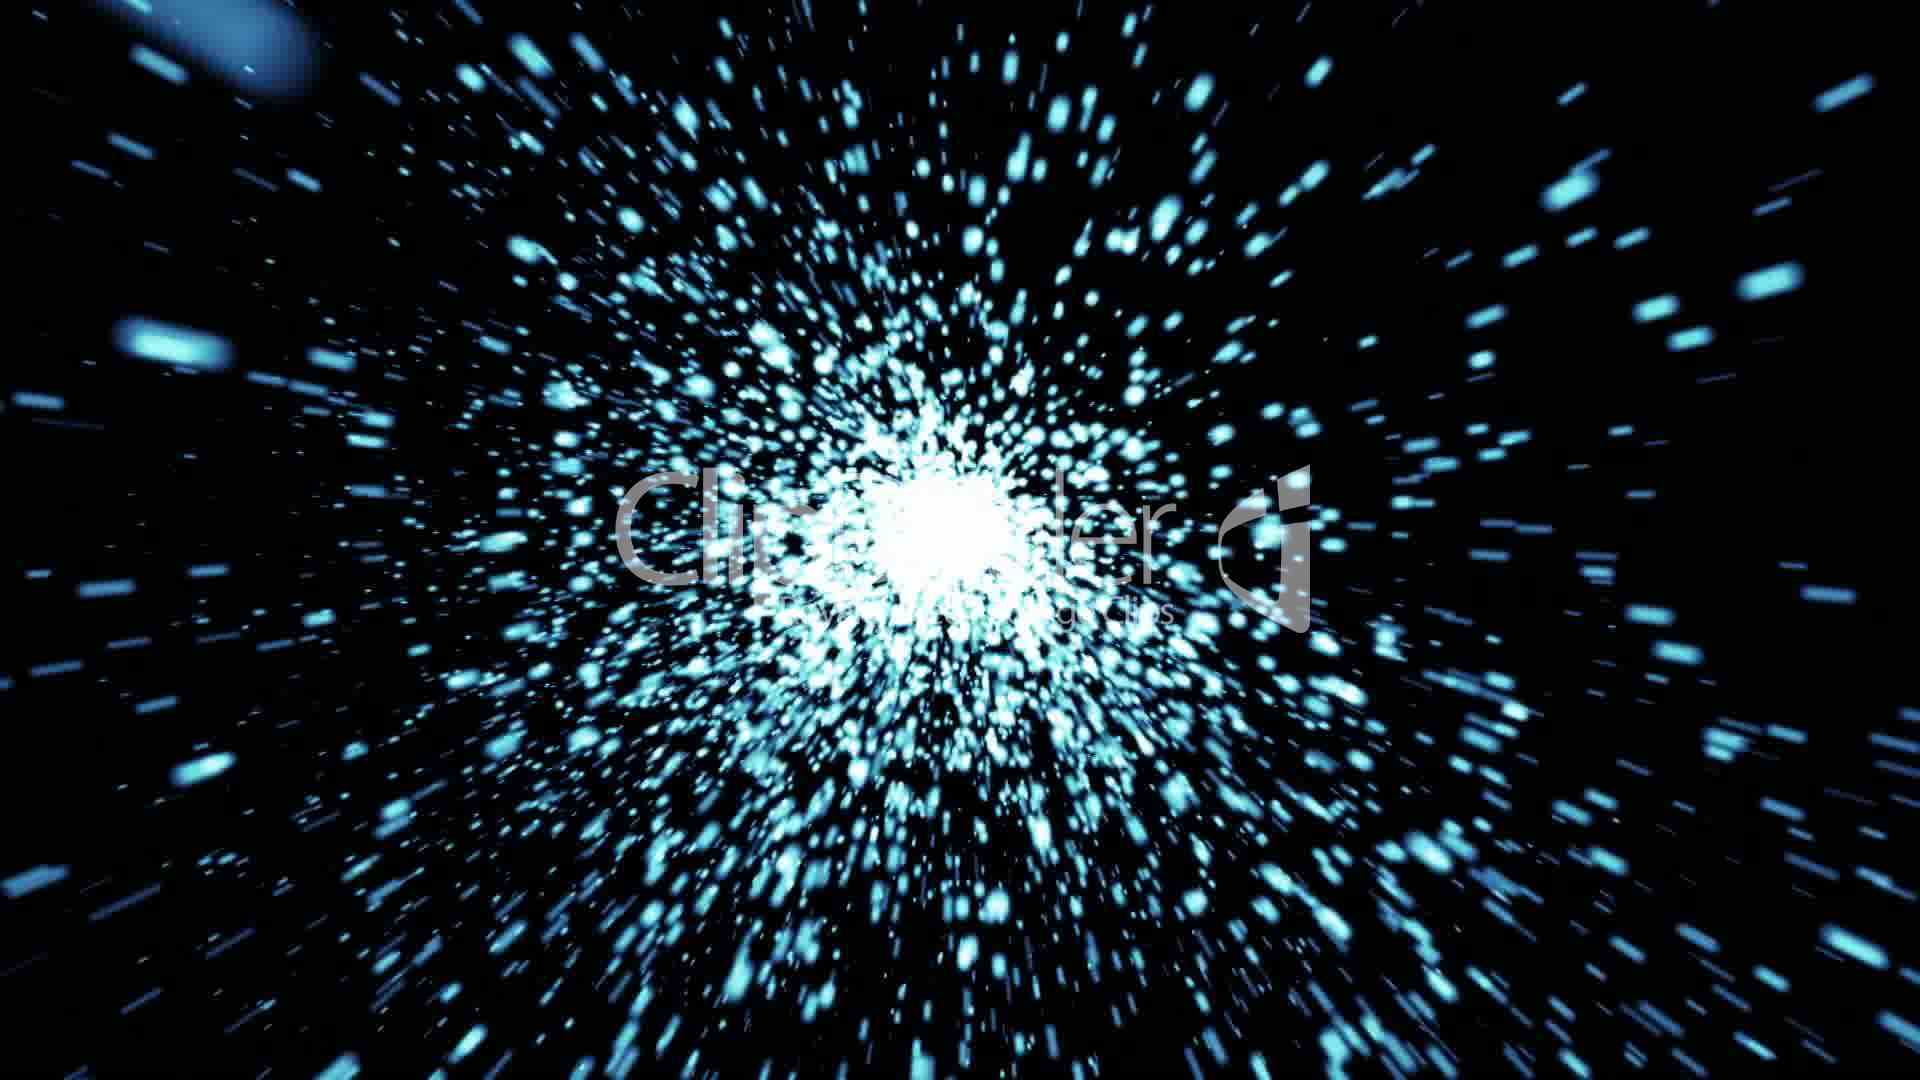 abstract background of space with particles video  royalty